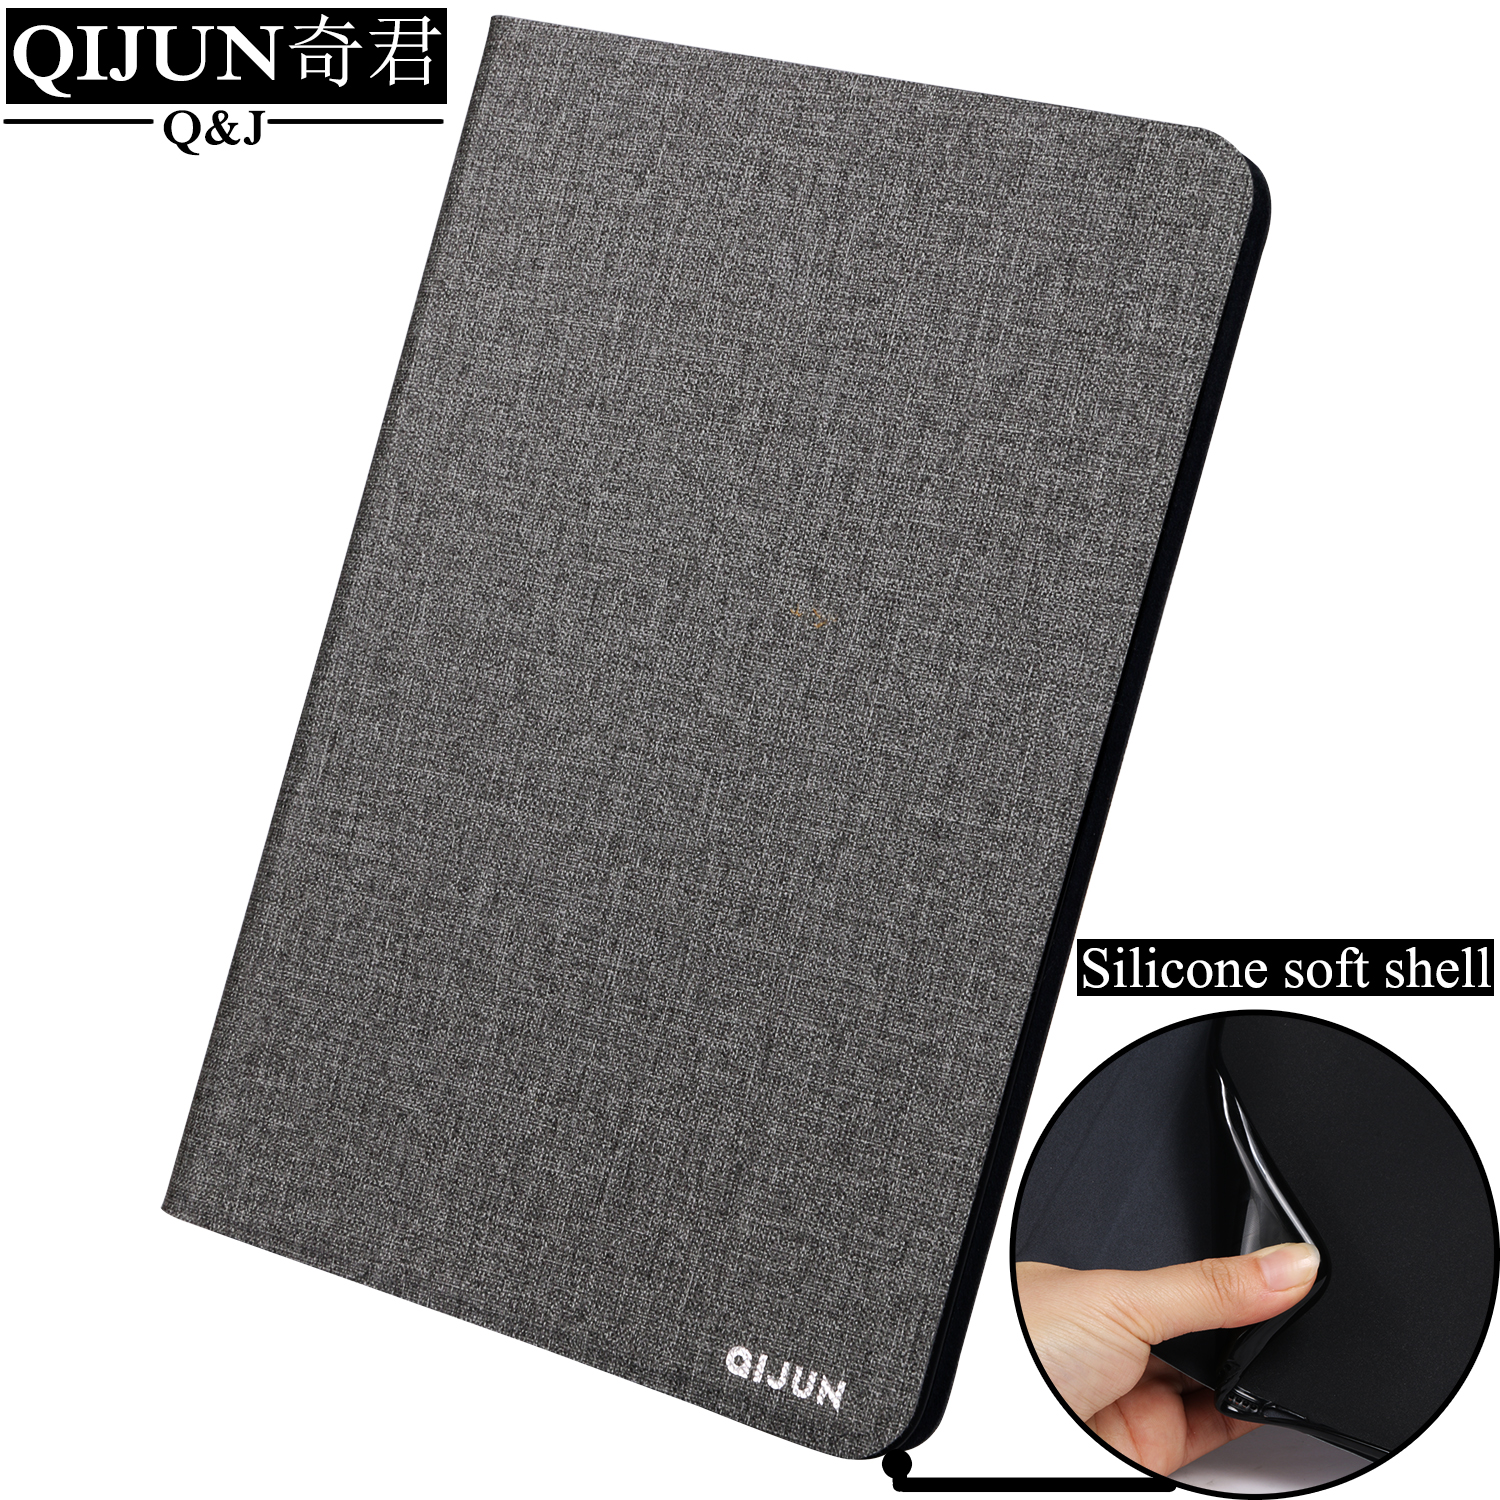 Flip PU Leather case For Apple iPad 9 7 inch 2018 fundas Protective Stand Cover Soft Shell skin capa coque for ipad6 A1893 A1954 in Tablets e Books Case from Computer Office